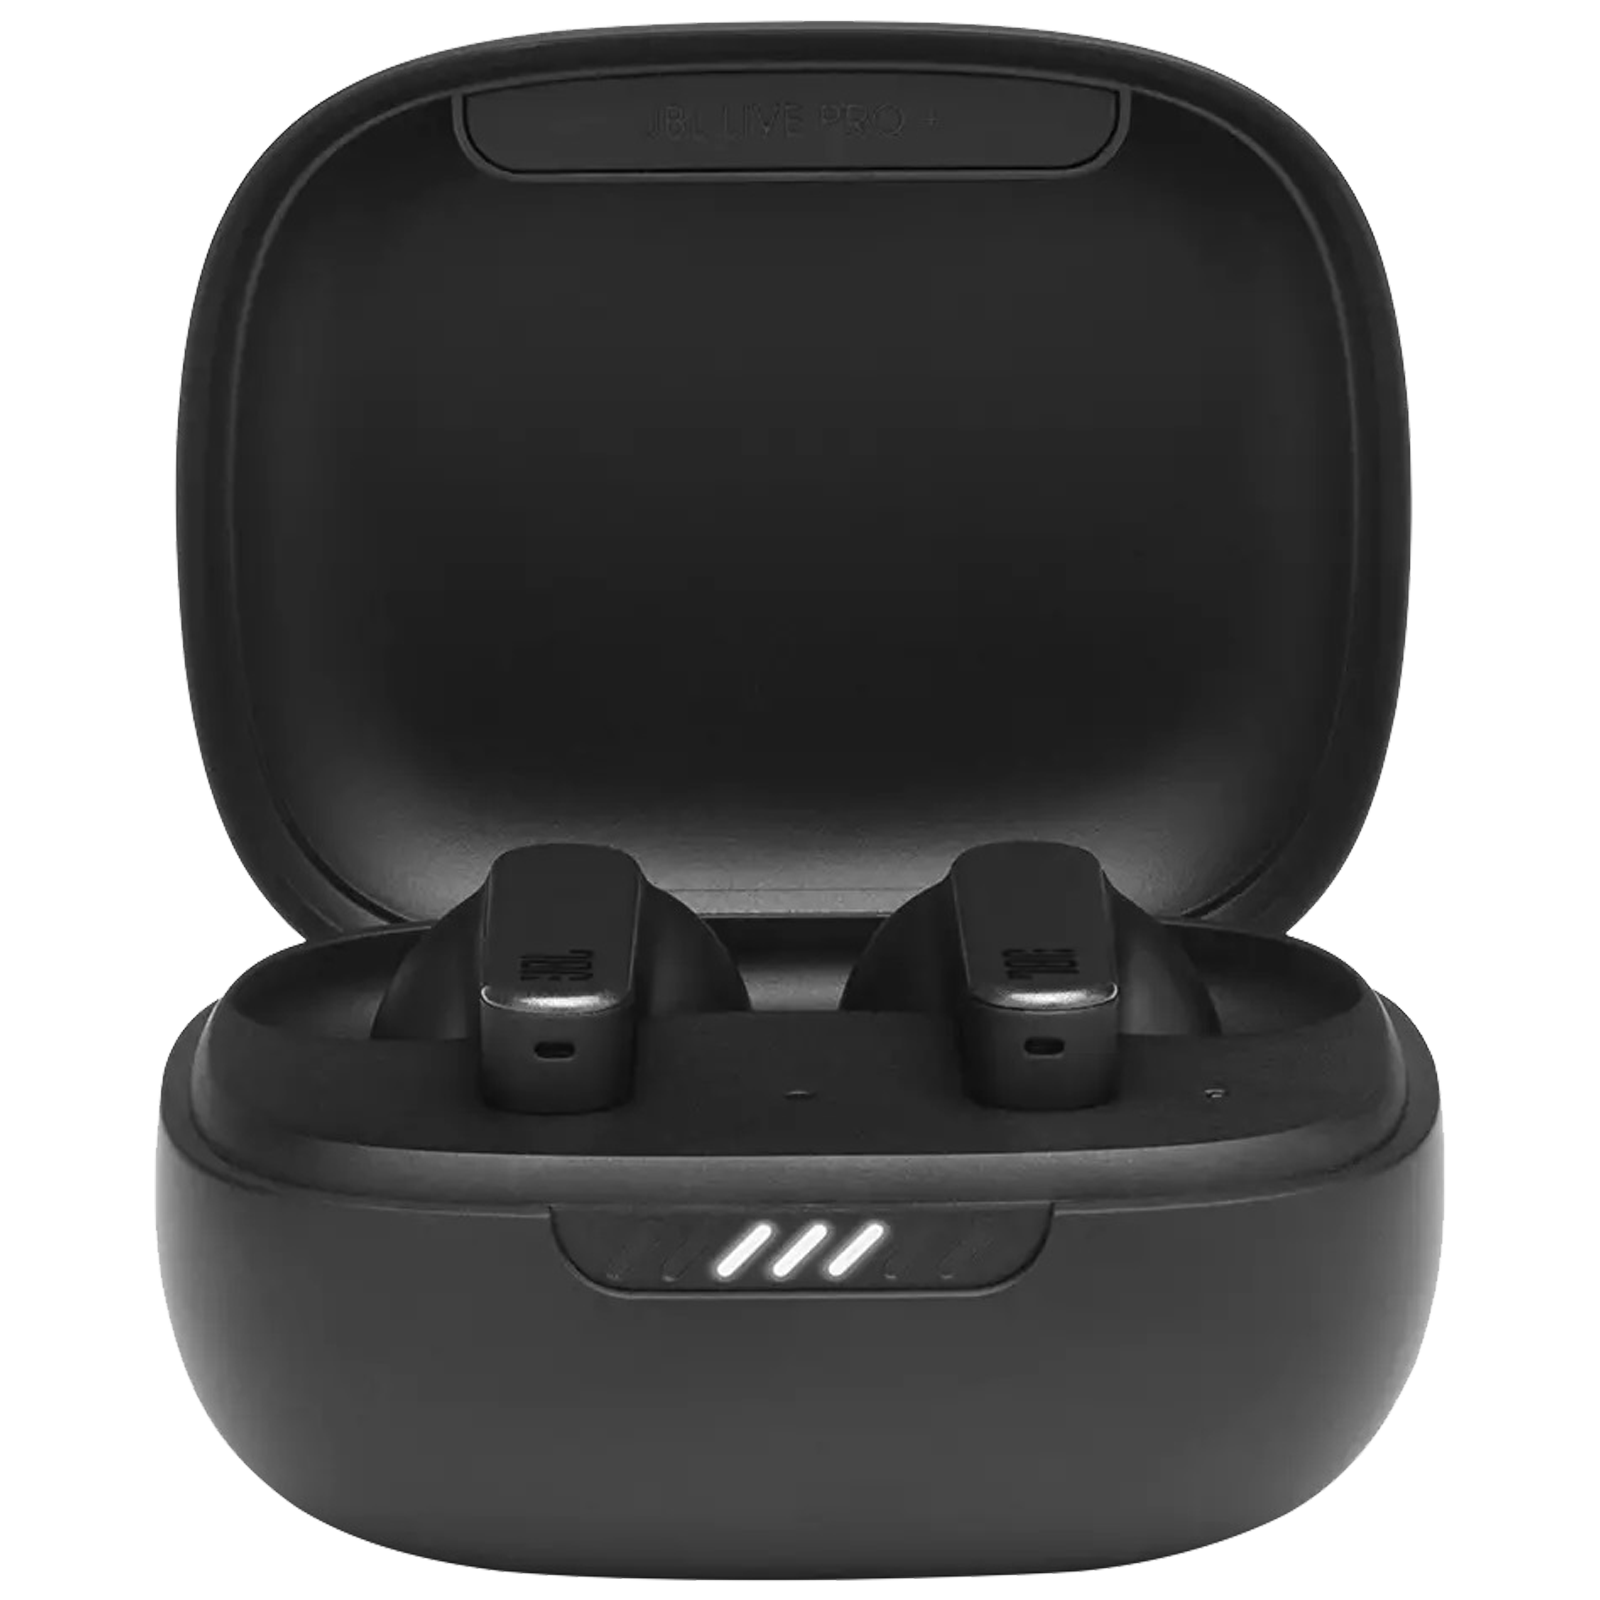 JBL Live Pro Plus In-Ear Active Noise Cancellation Truly Wireless Earbuds with Mic (Bluetooth 5.0, Water Resistant, JBLLIVEPROPTWSBLK, Black)_1